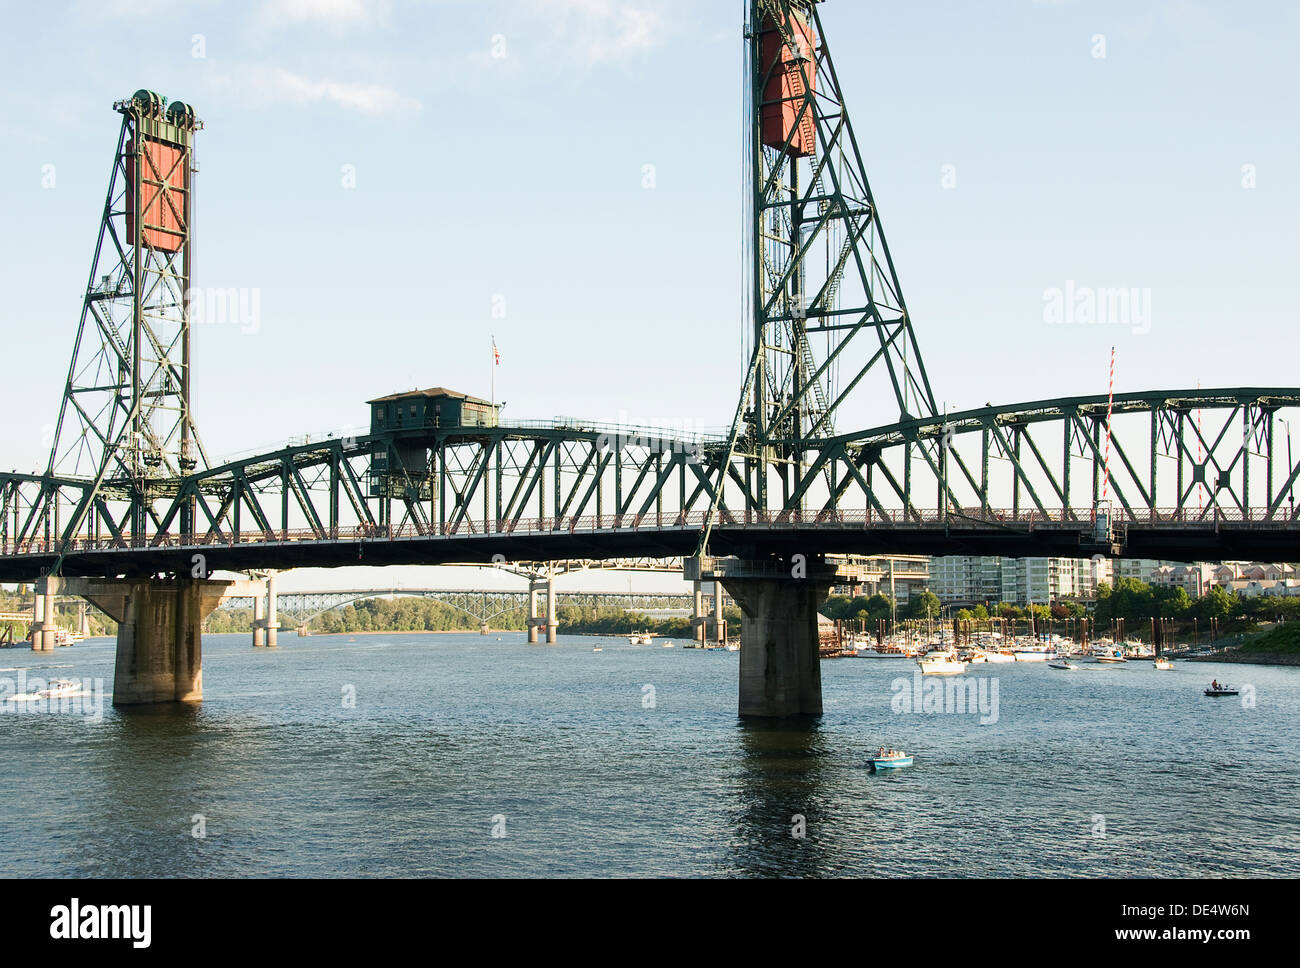 A photograph of the Hawthorne Bridge, the oldest vertical lift bridge in operation in the United States. - Stock Image